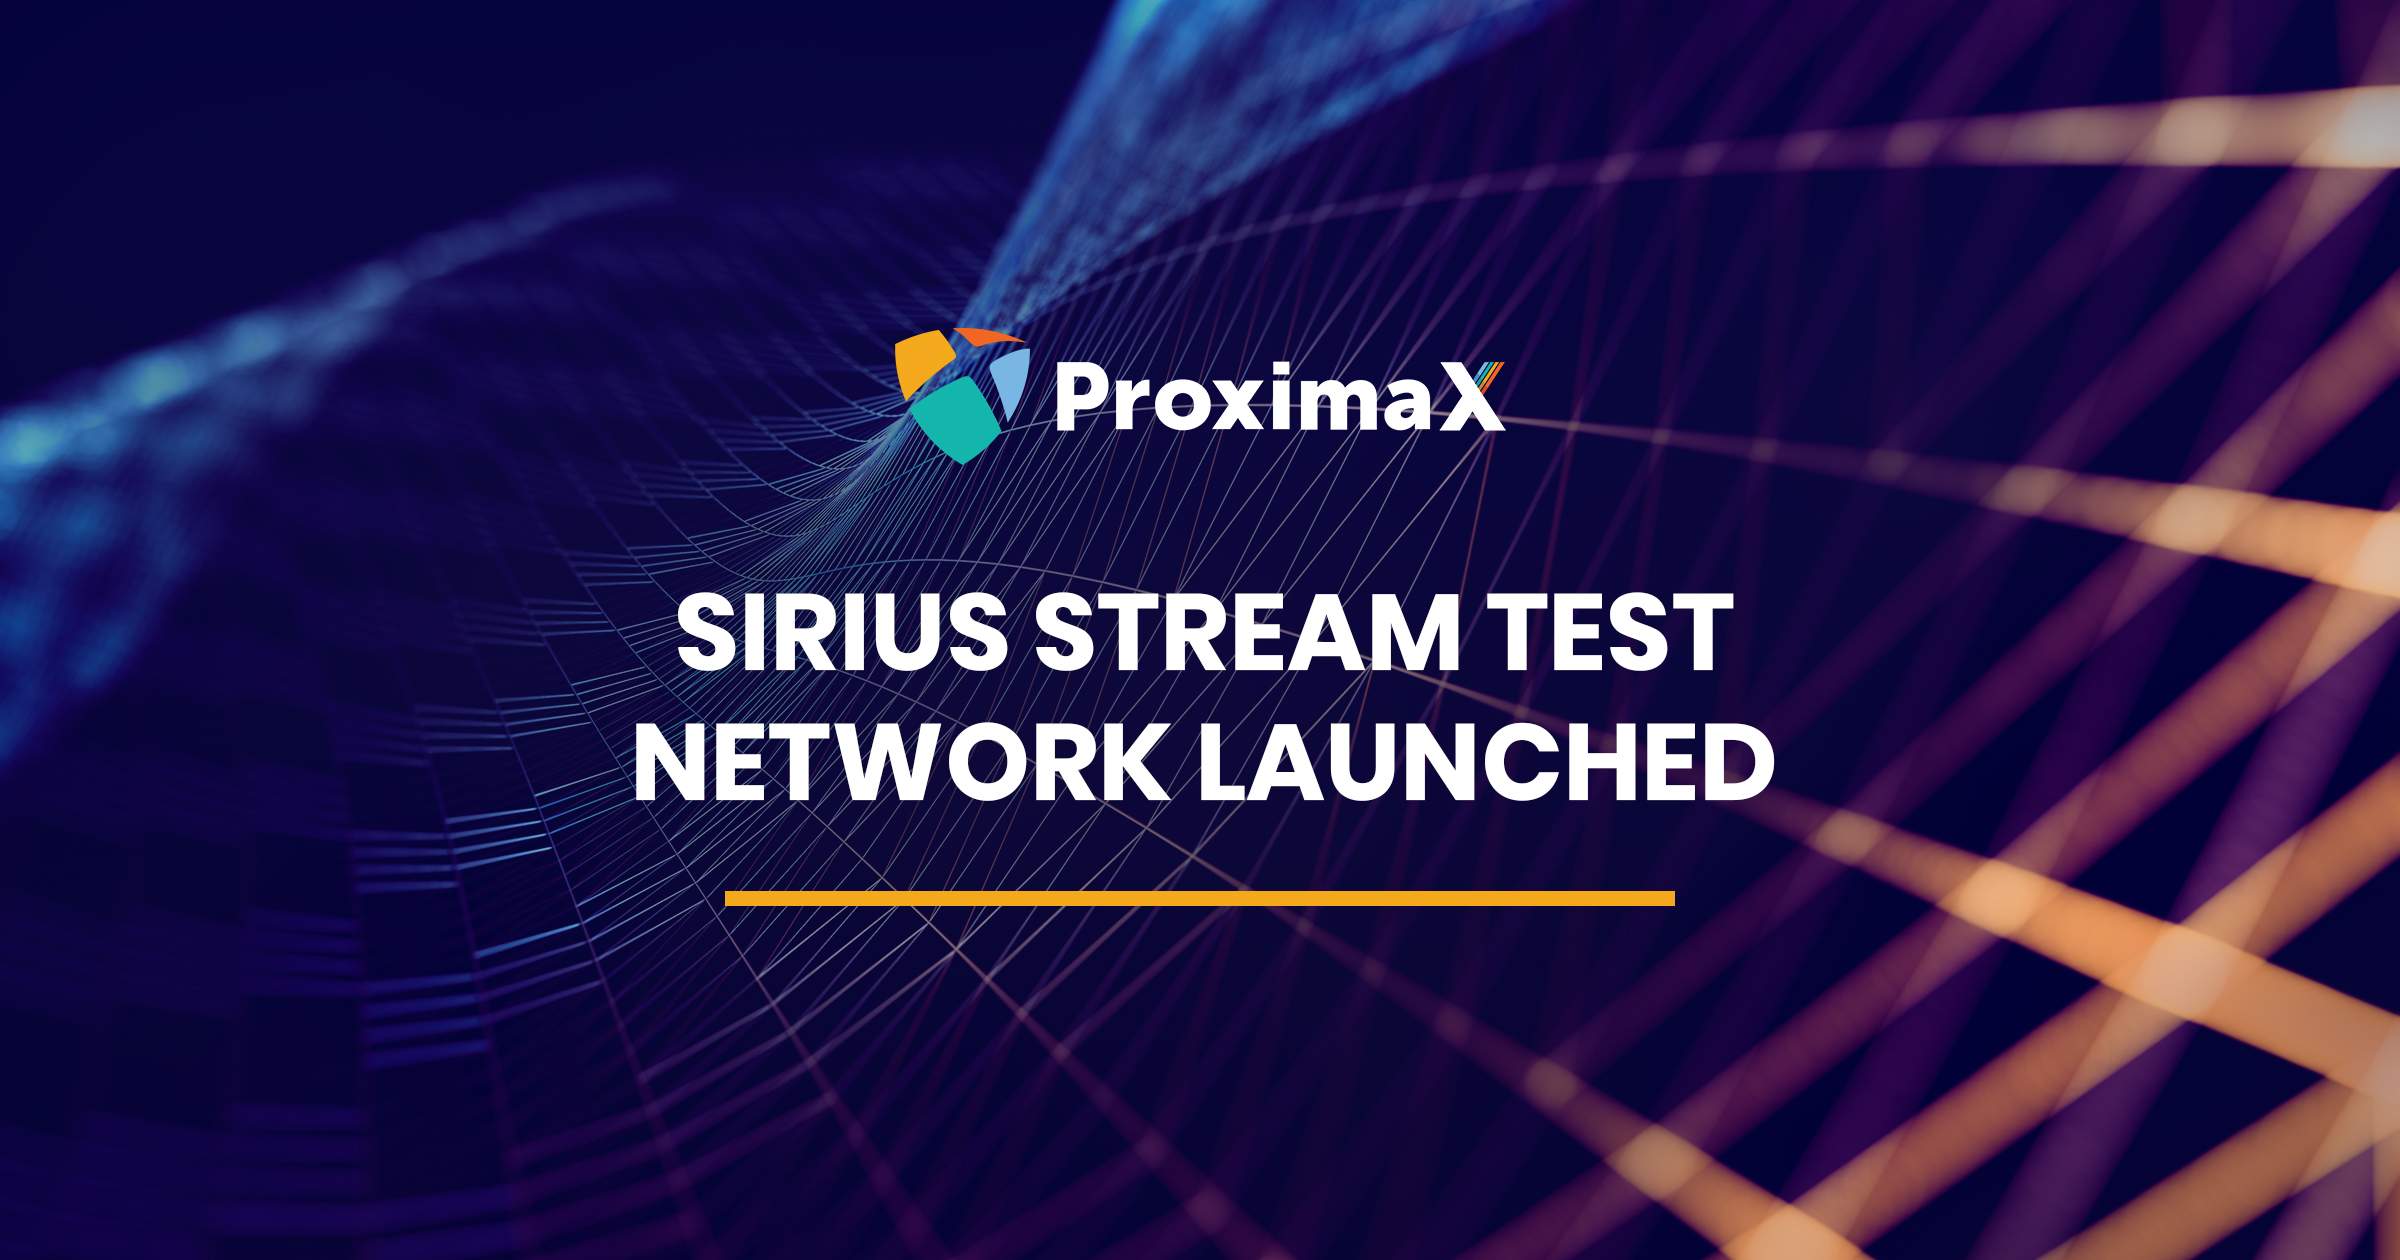 Sirius Stream Test Network Launched